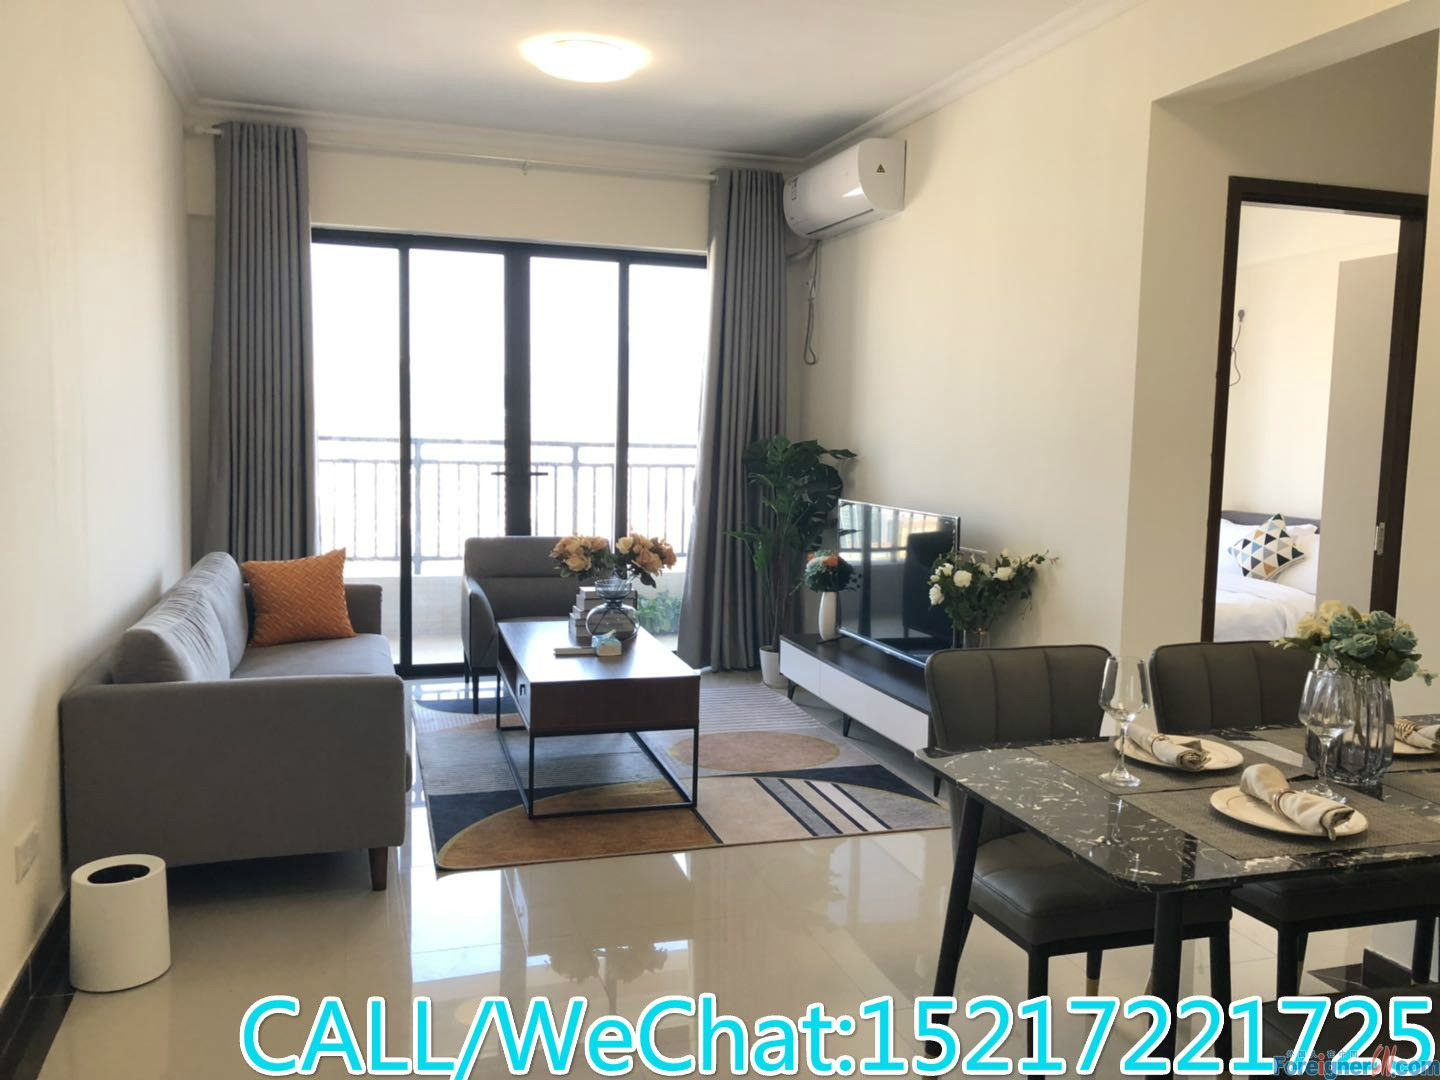 Cozy 2brs,fully furnished,almost new decoration,CBD AREA,convenient for ur life.